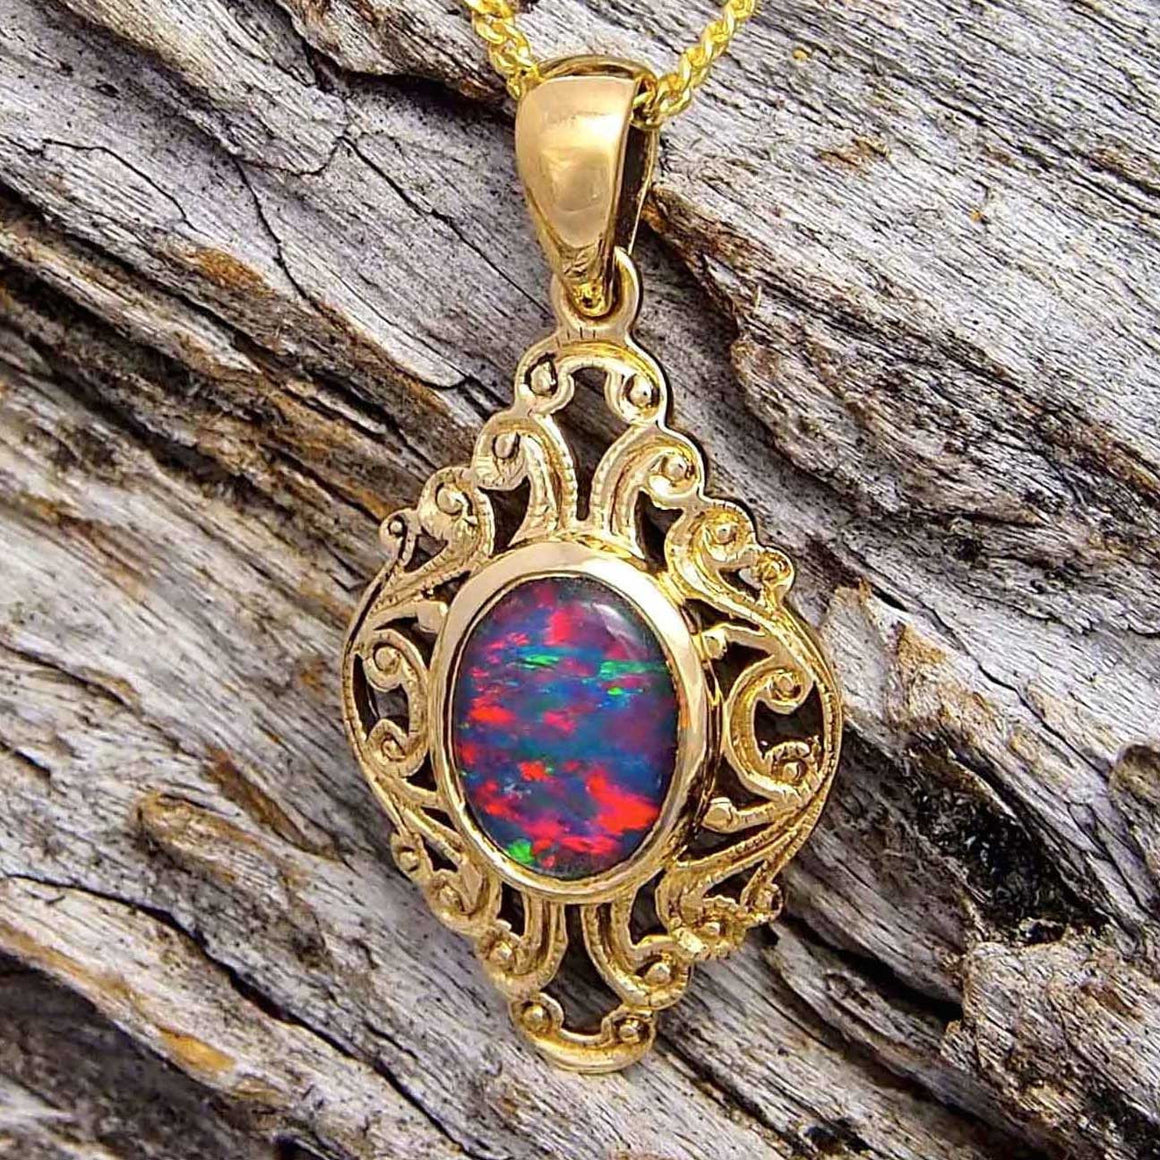 9ct yellow gold decorative design necklace pendant bezel set with a rich blue, red and green oval triplet opal